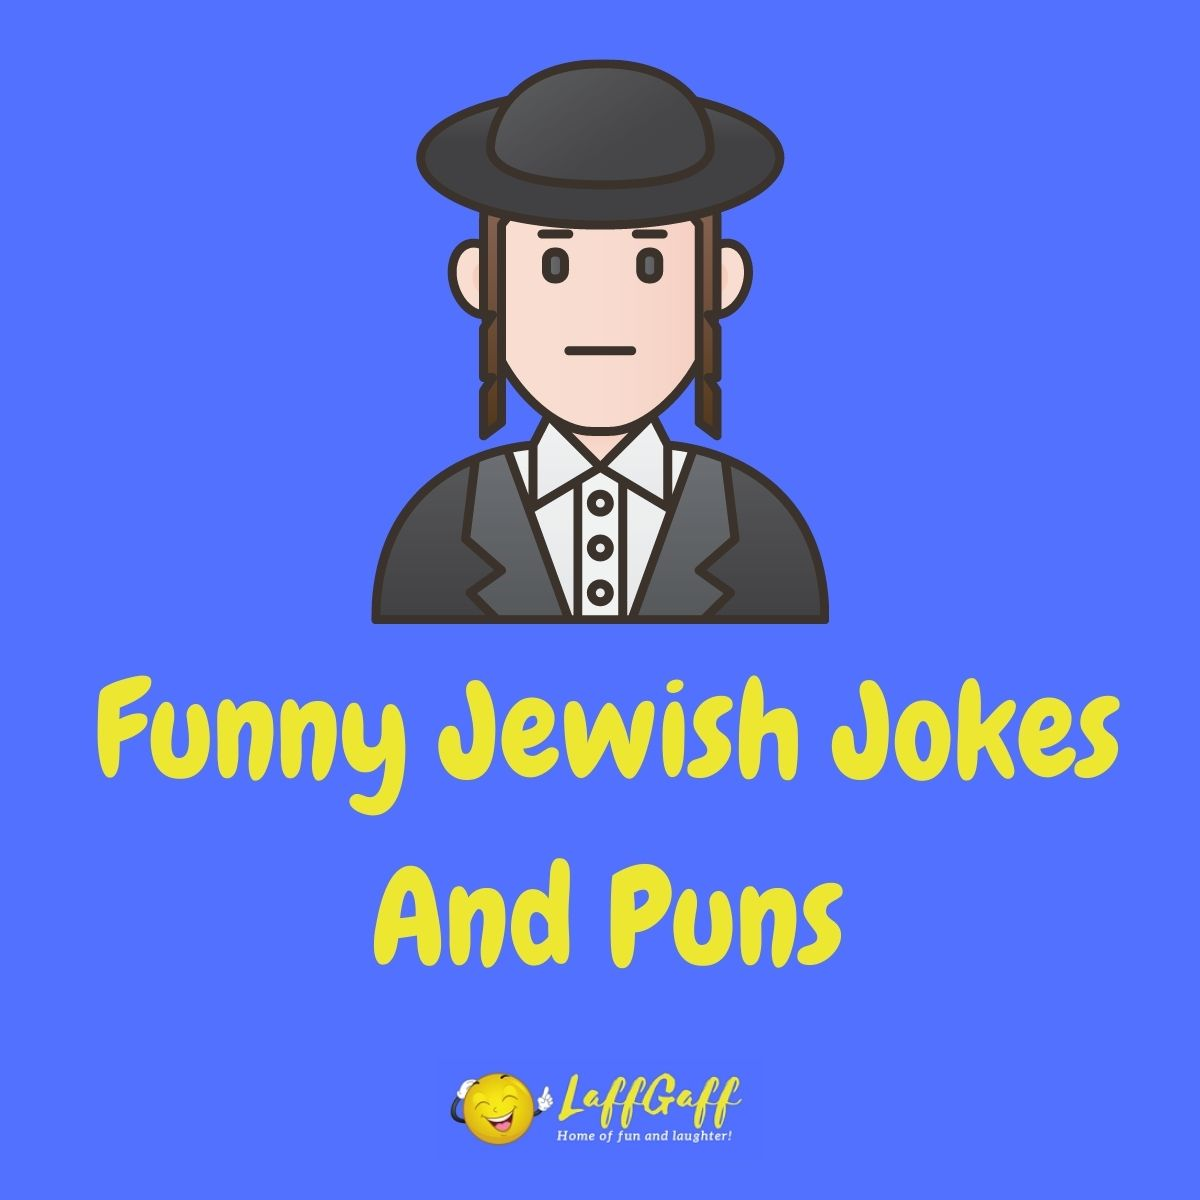 Featured image for a page of funny Jewish jokes and puns.